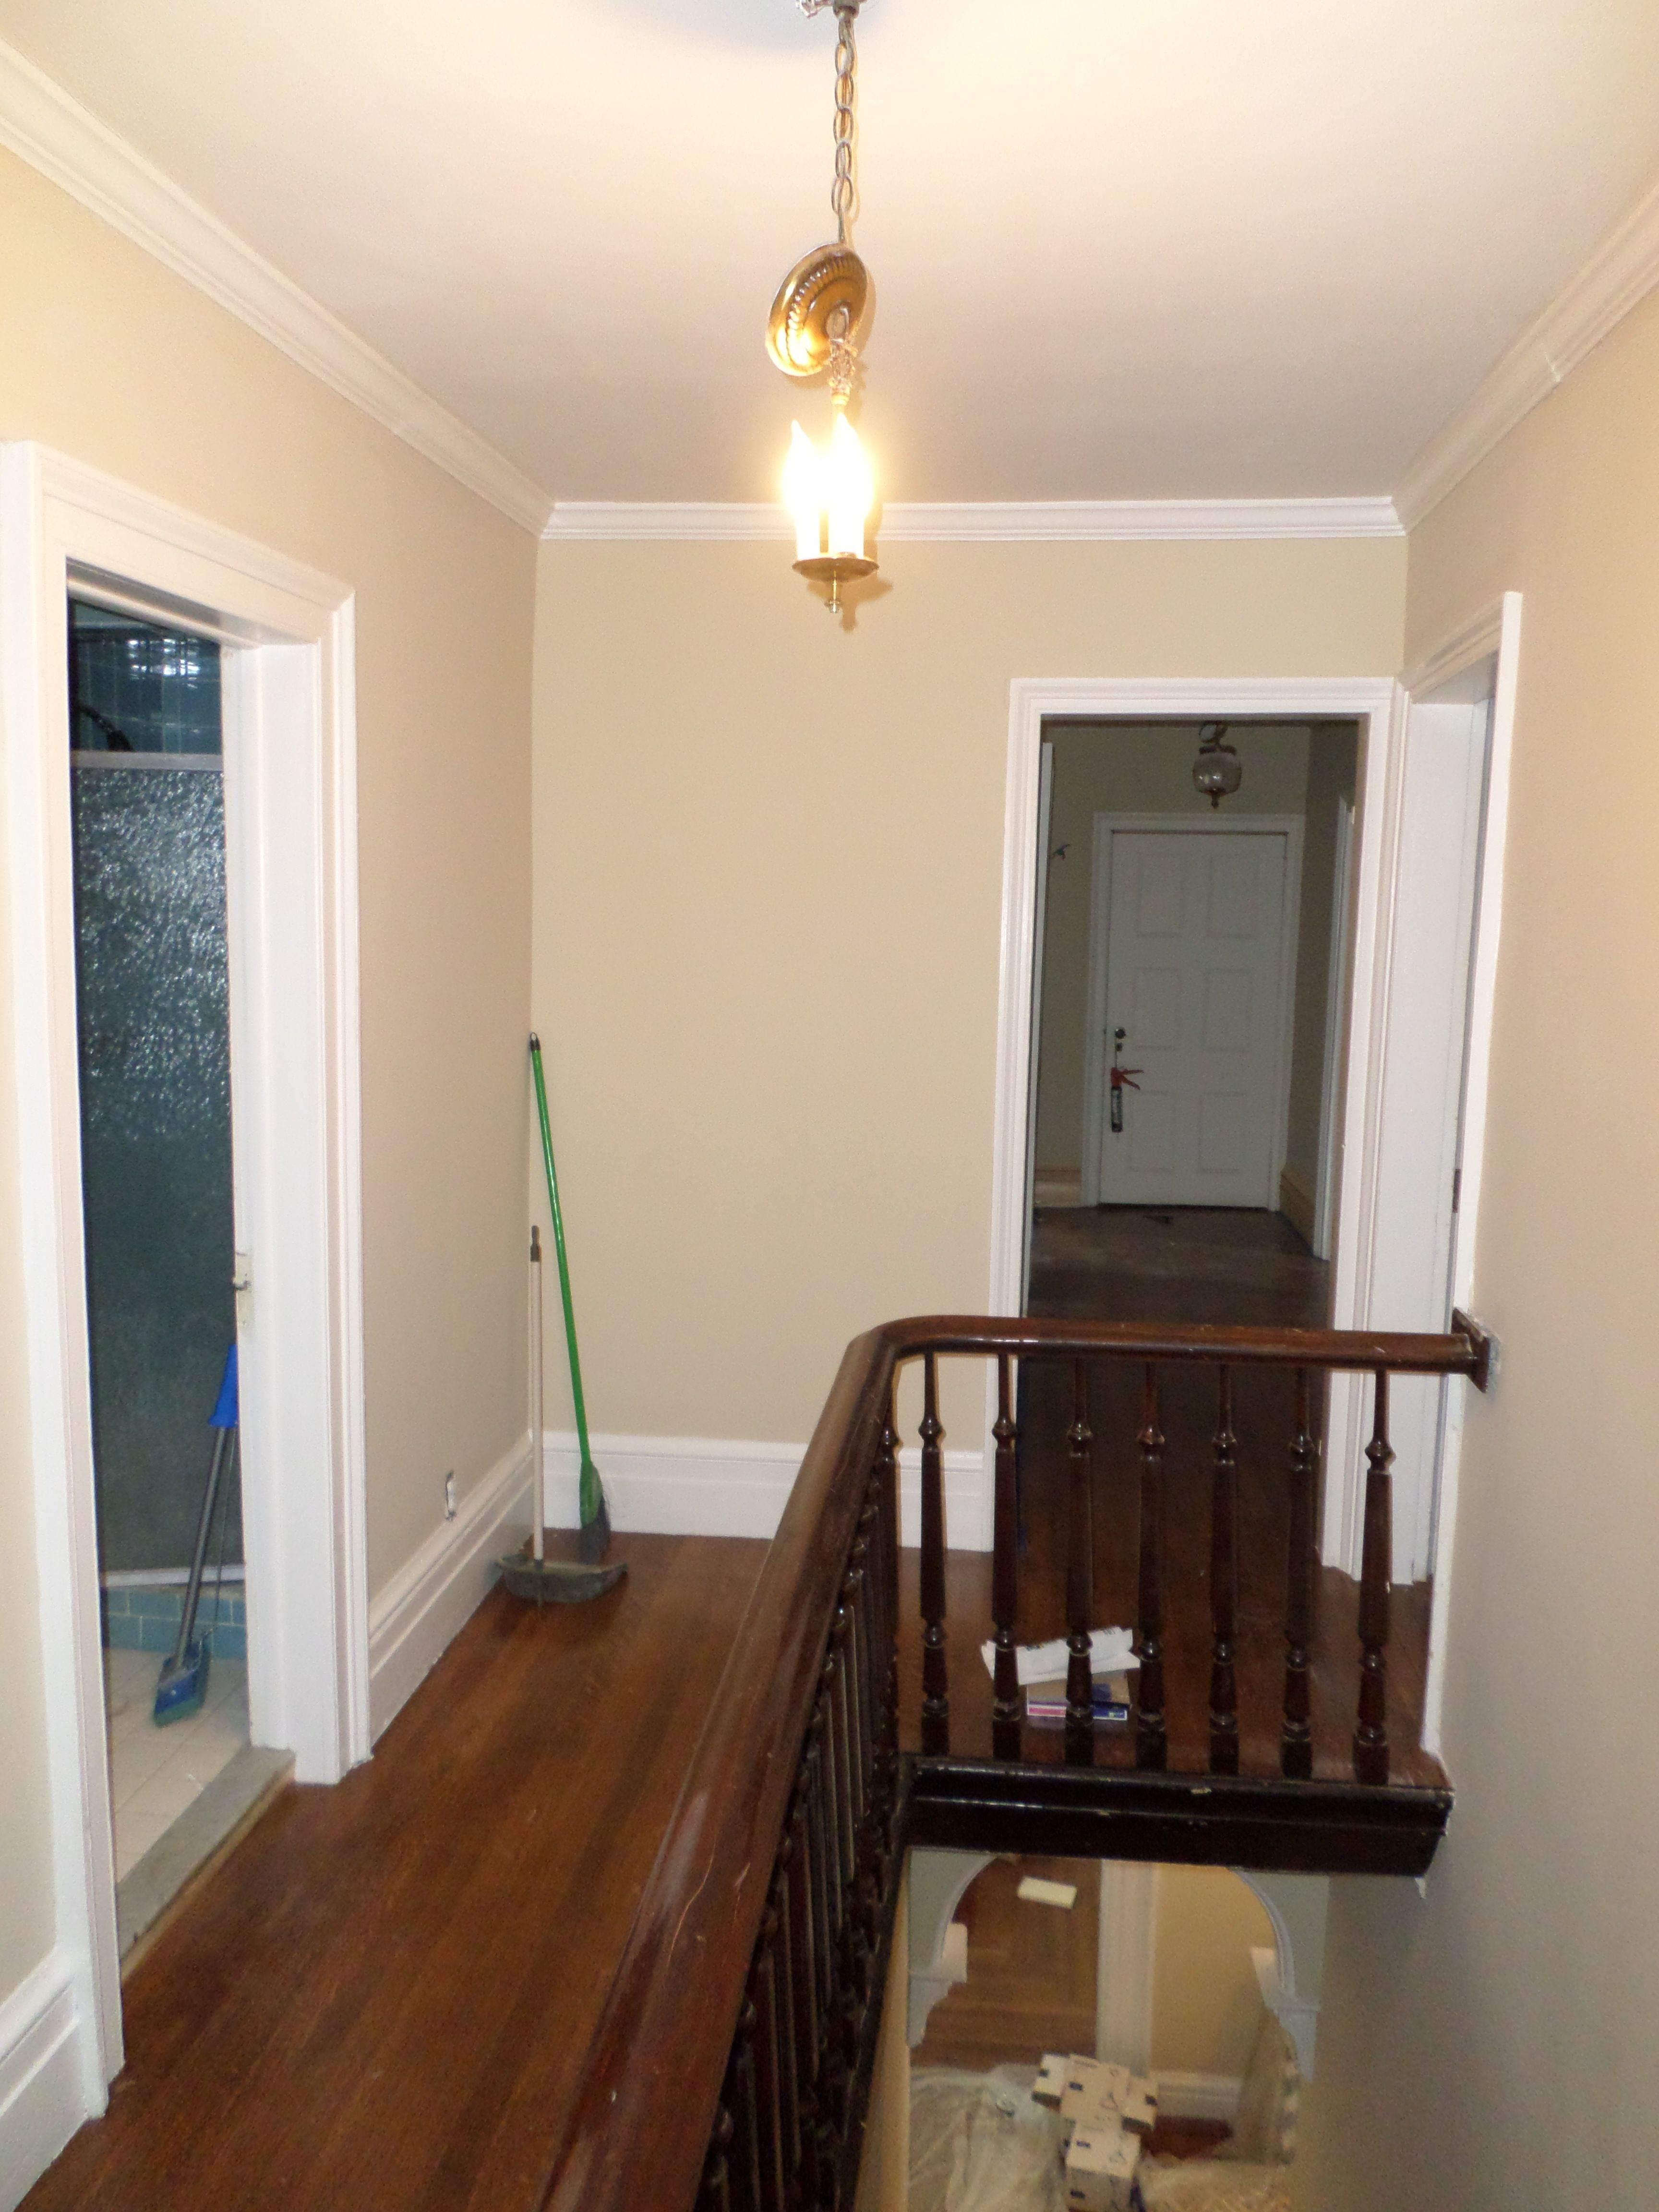 Upstairs Hall Newly Painted Benjamin Moore Carrington Beige.